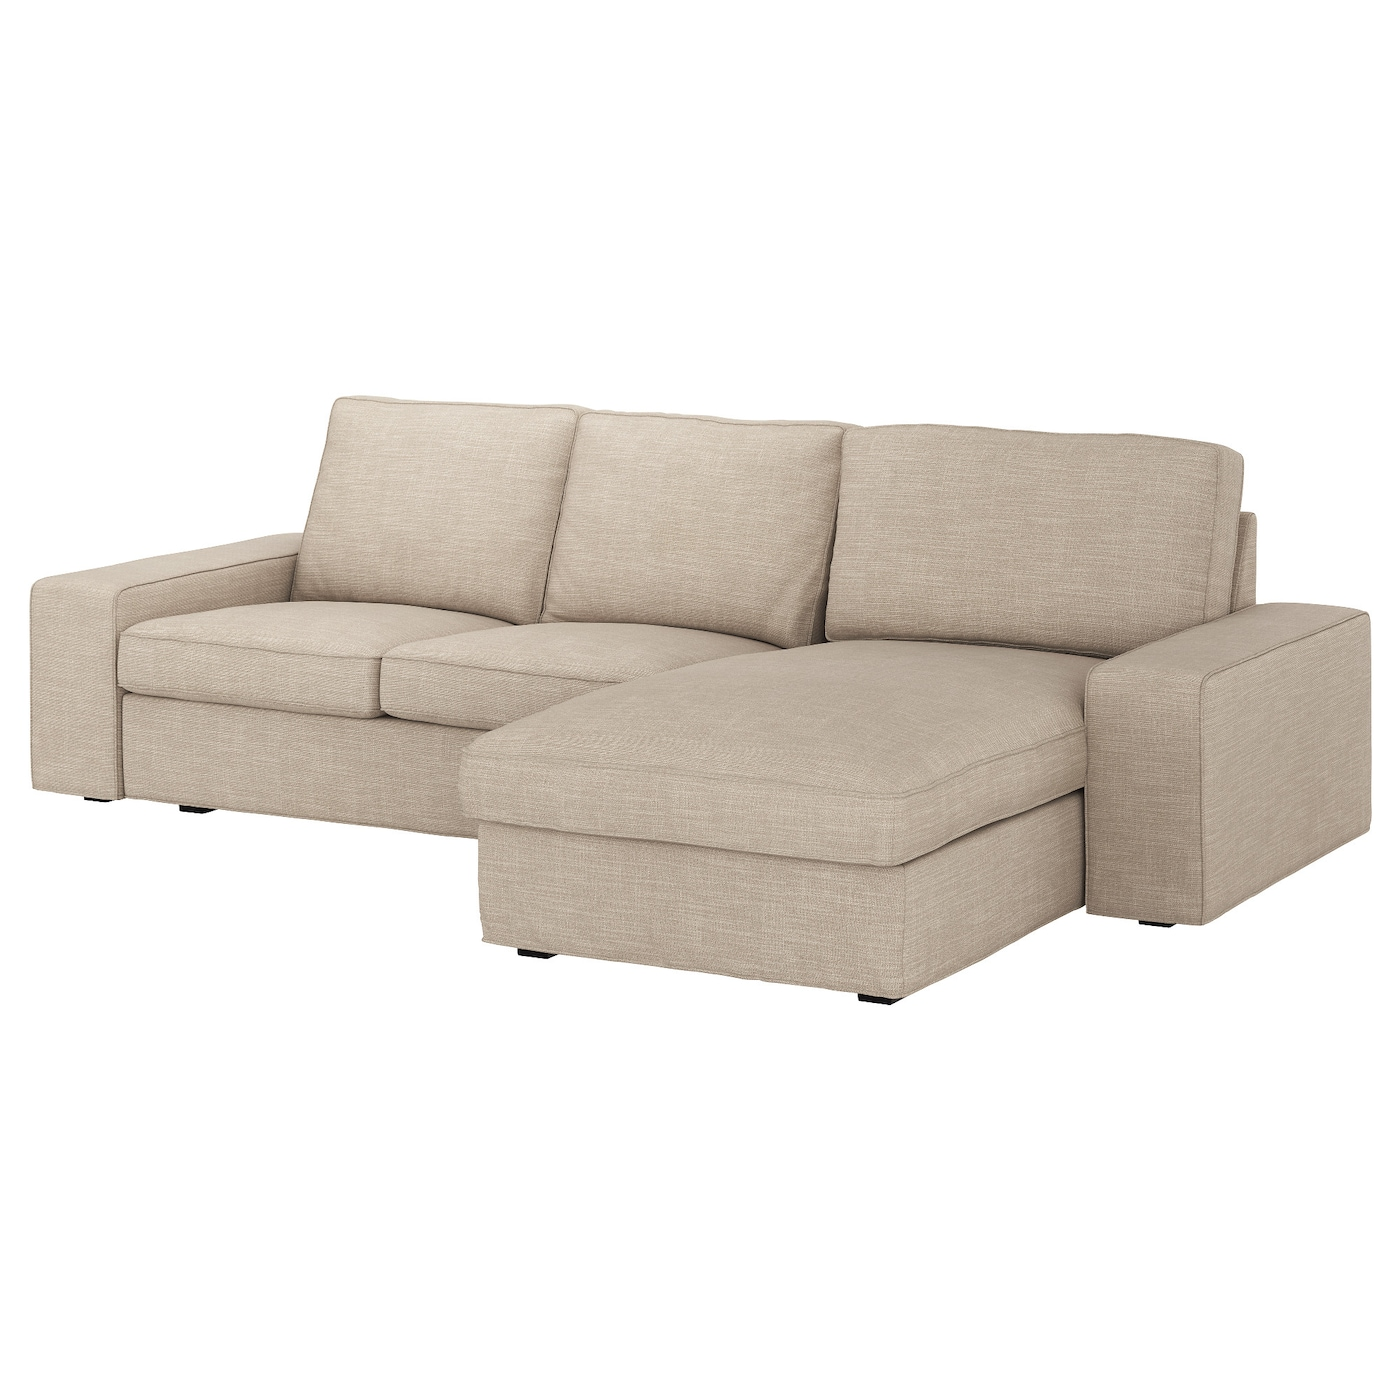 Kivik 3 Seat Sofa With Chaise Longue Hillared Beige Ikea